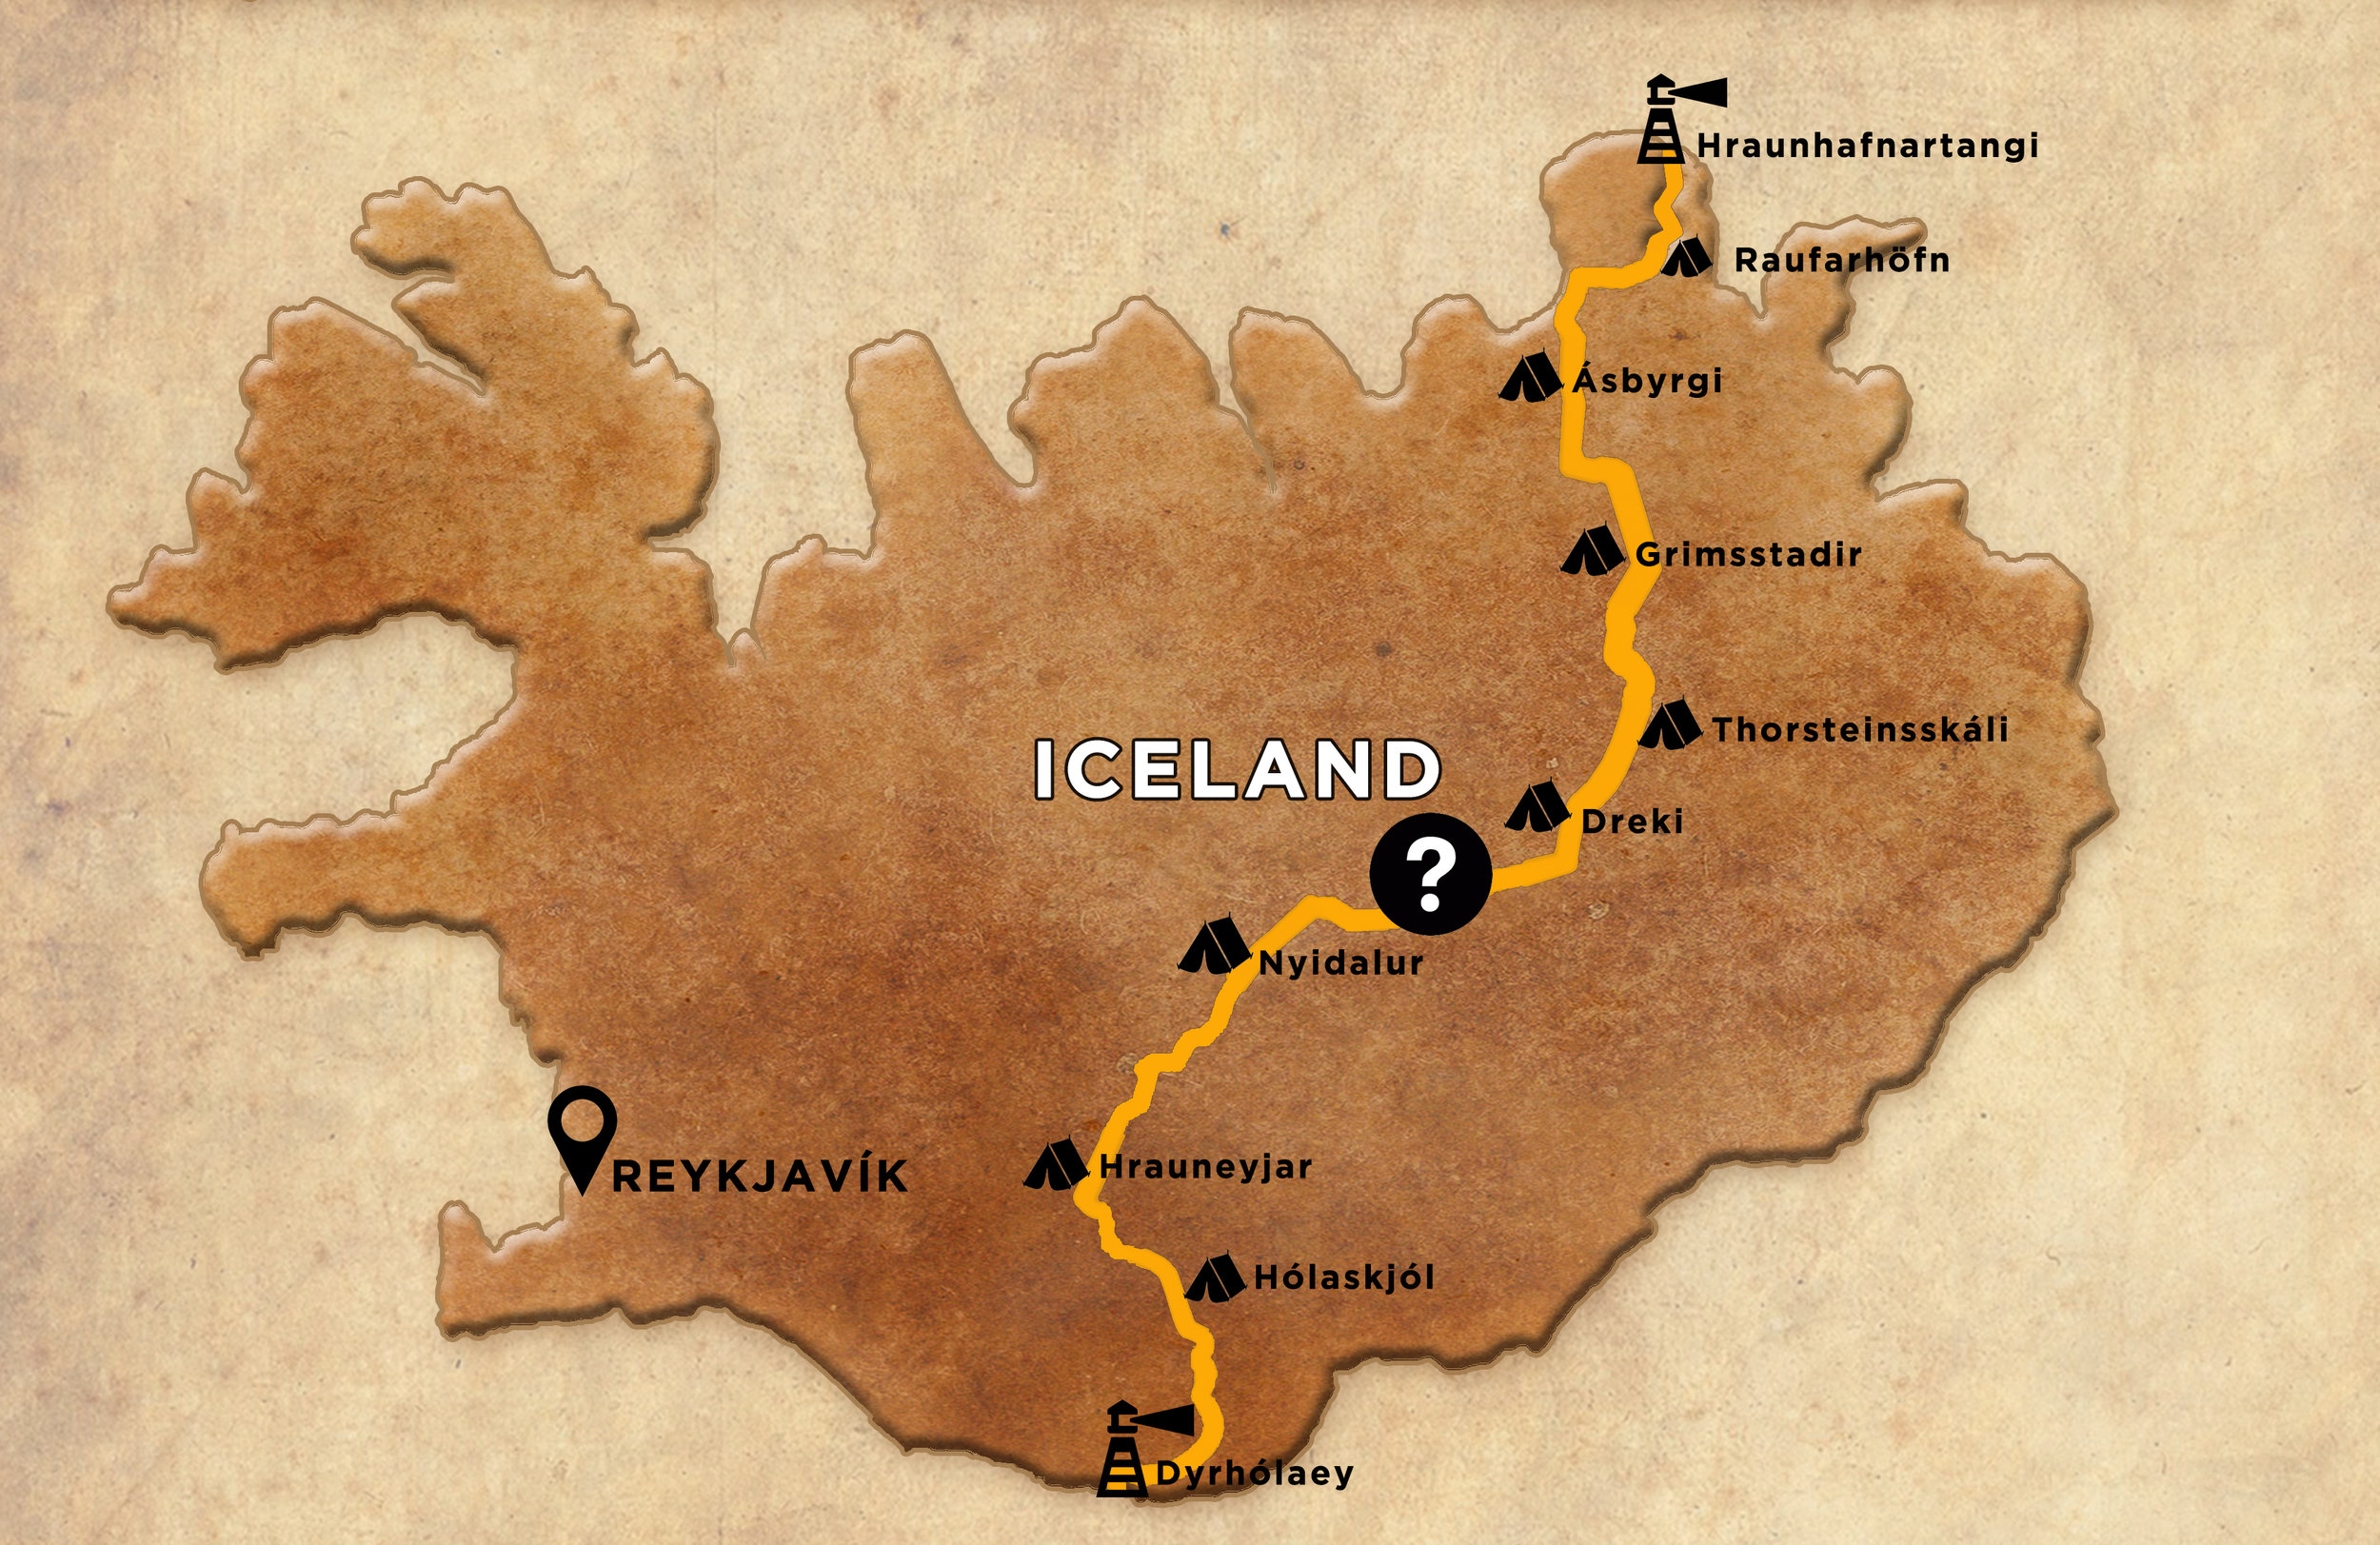 Shared_Territory_Iceland_Route.jpg